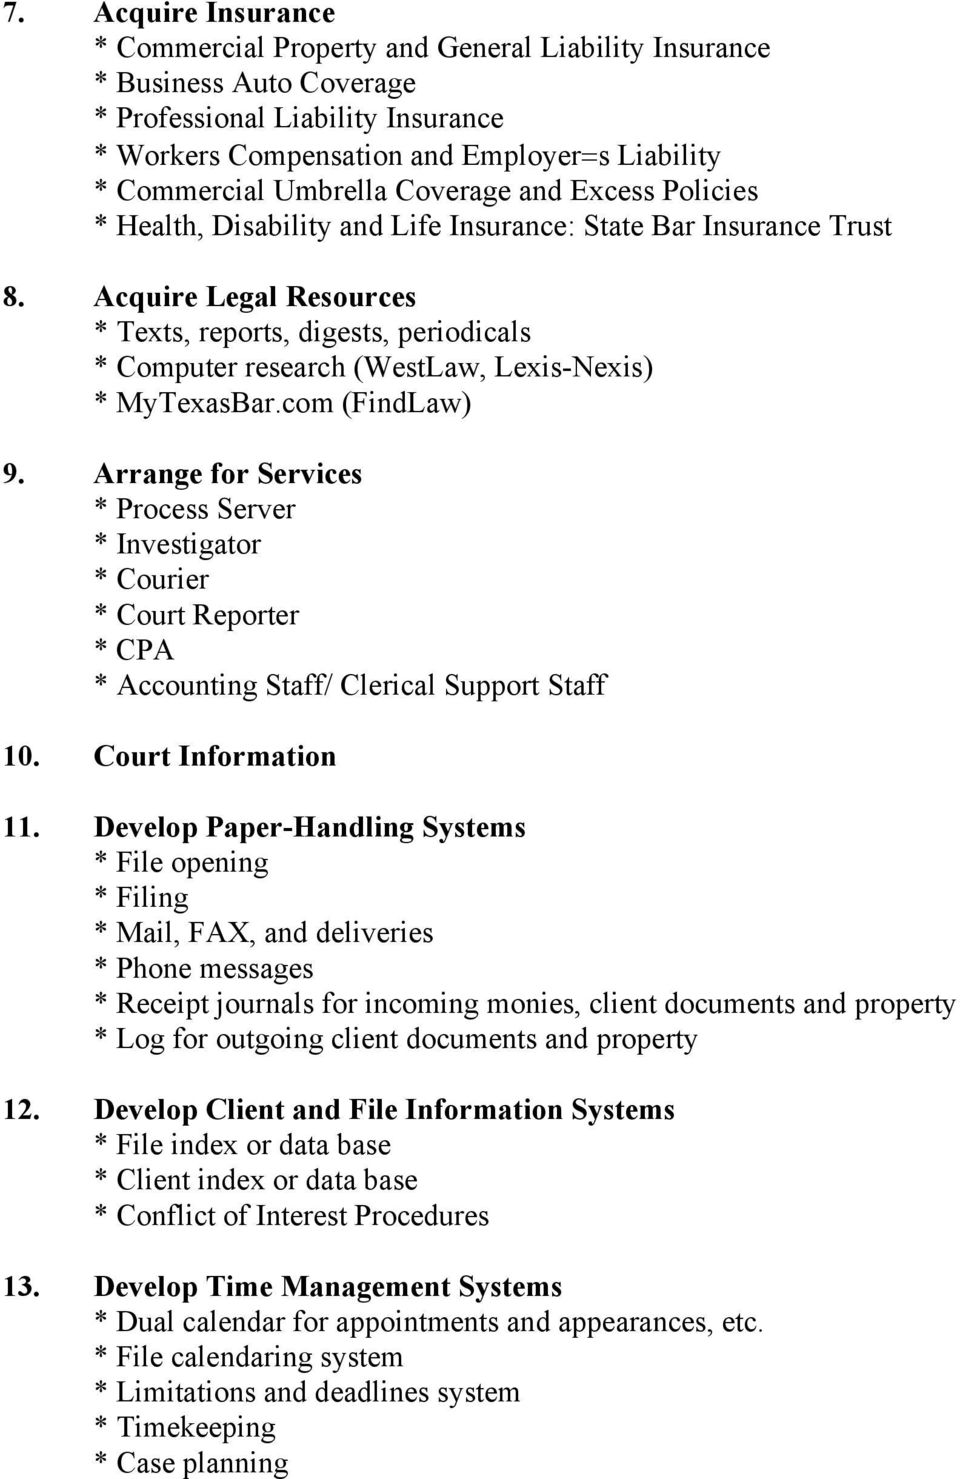 Acquire Legal Resources * Texts, reports, digests, periodicals * Computer research (WestLaw, Lexis-Nexis) * MyTexasBar.com (FindLaw) 9.